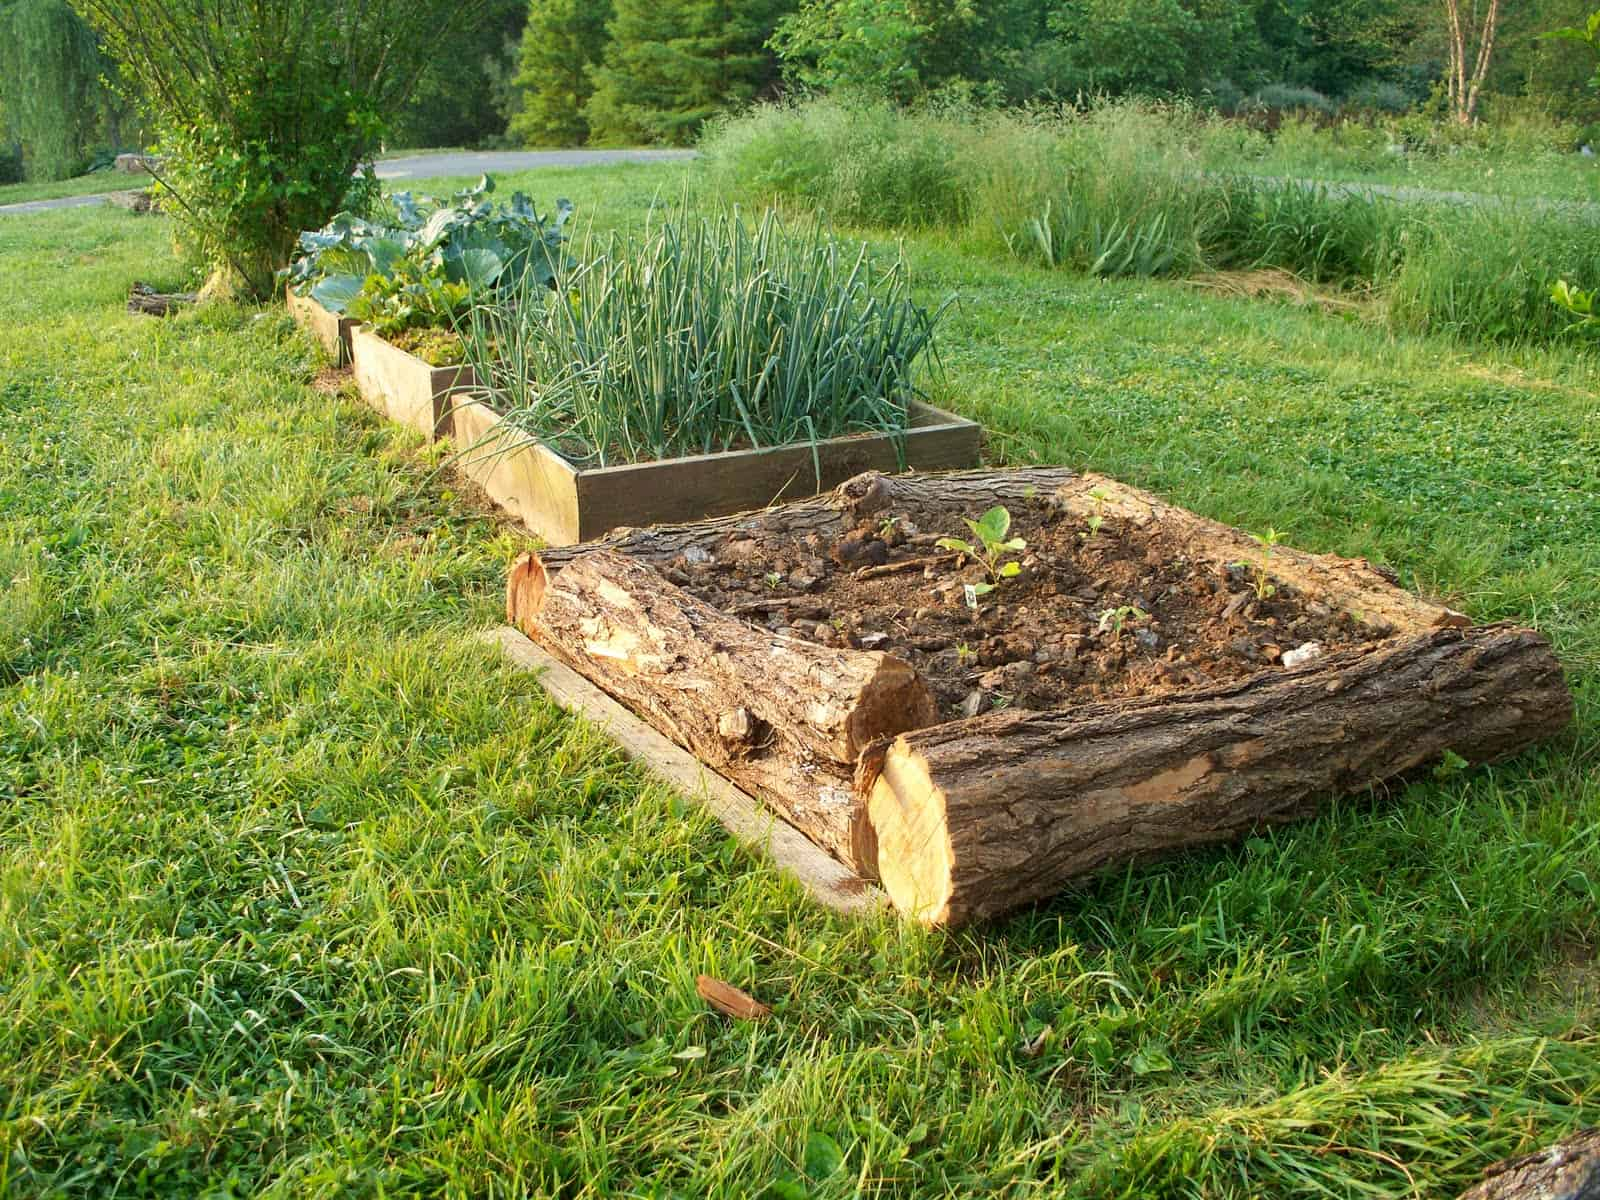 Garden Bed Designs fashionable ideas raised garden plans wonderful decoration beds how to build raised garden bed design Elevate Your Denver Garden With A Raised Bed Lifescape